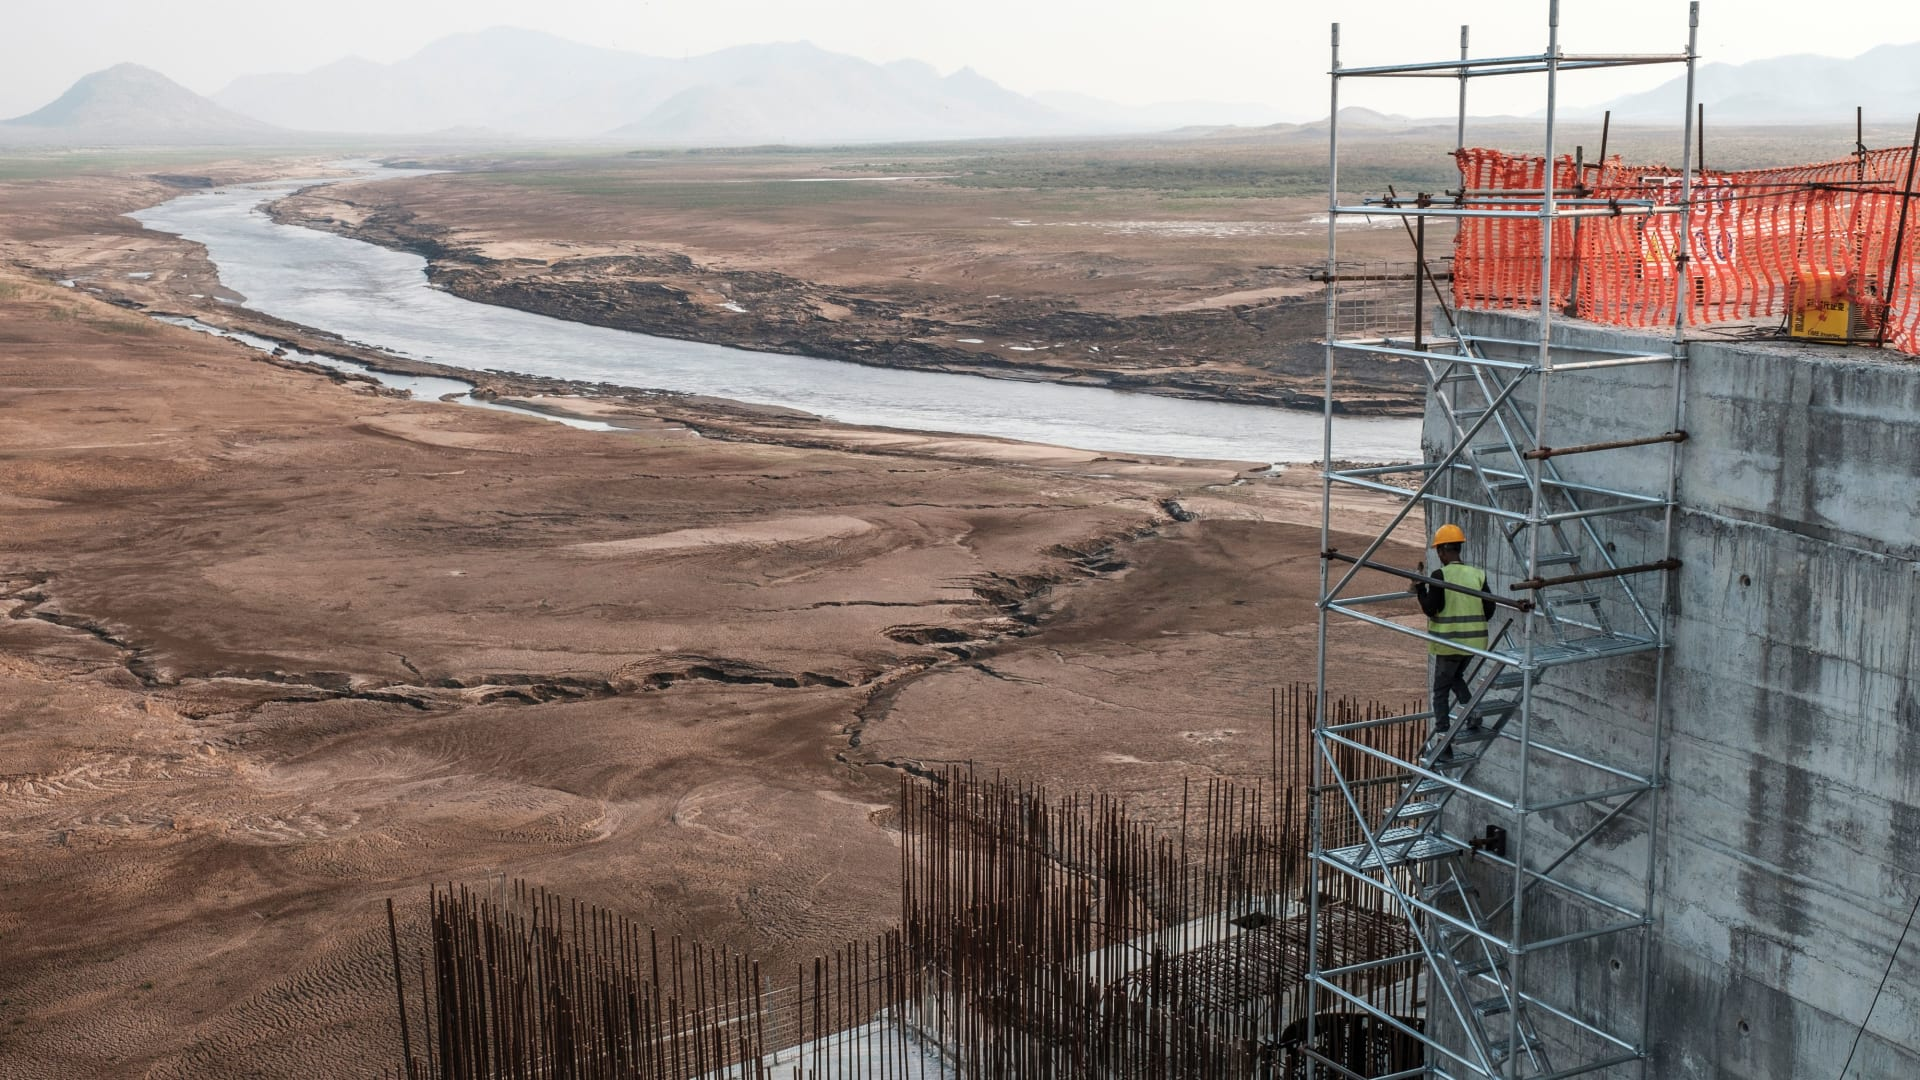 Egypt mobilizes Arab support in Nile dam dispute with Ethiopia